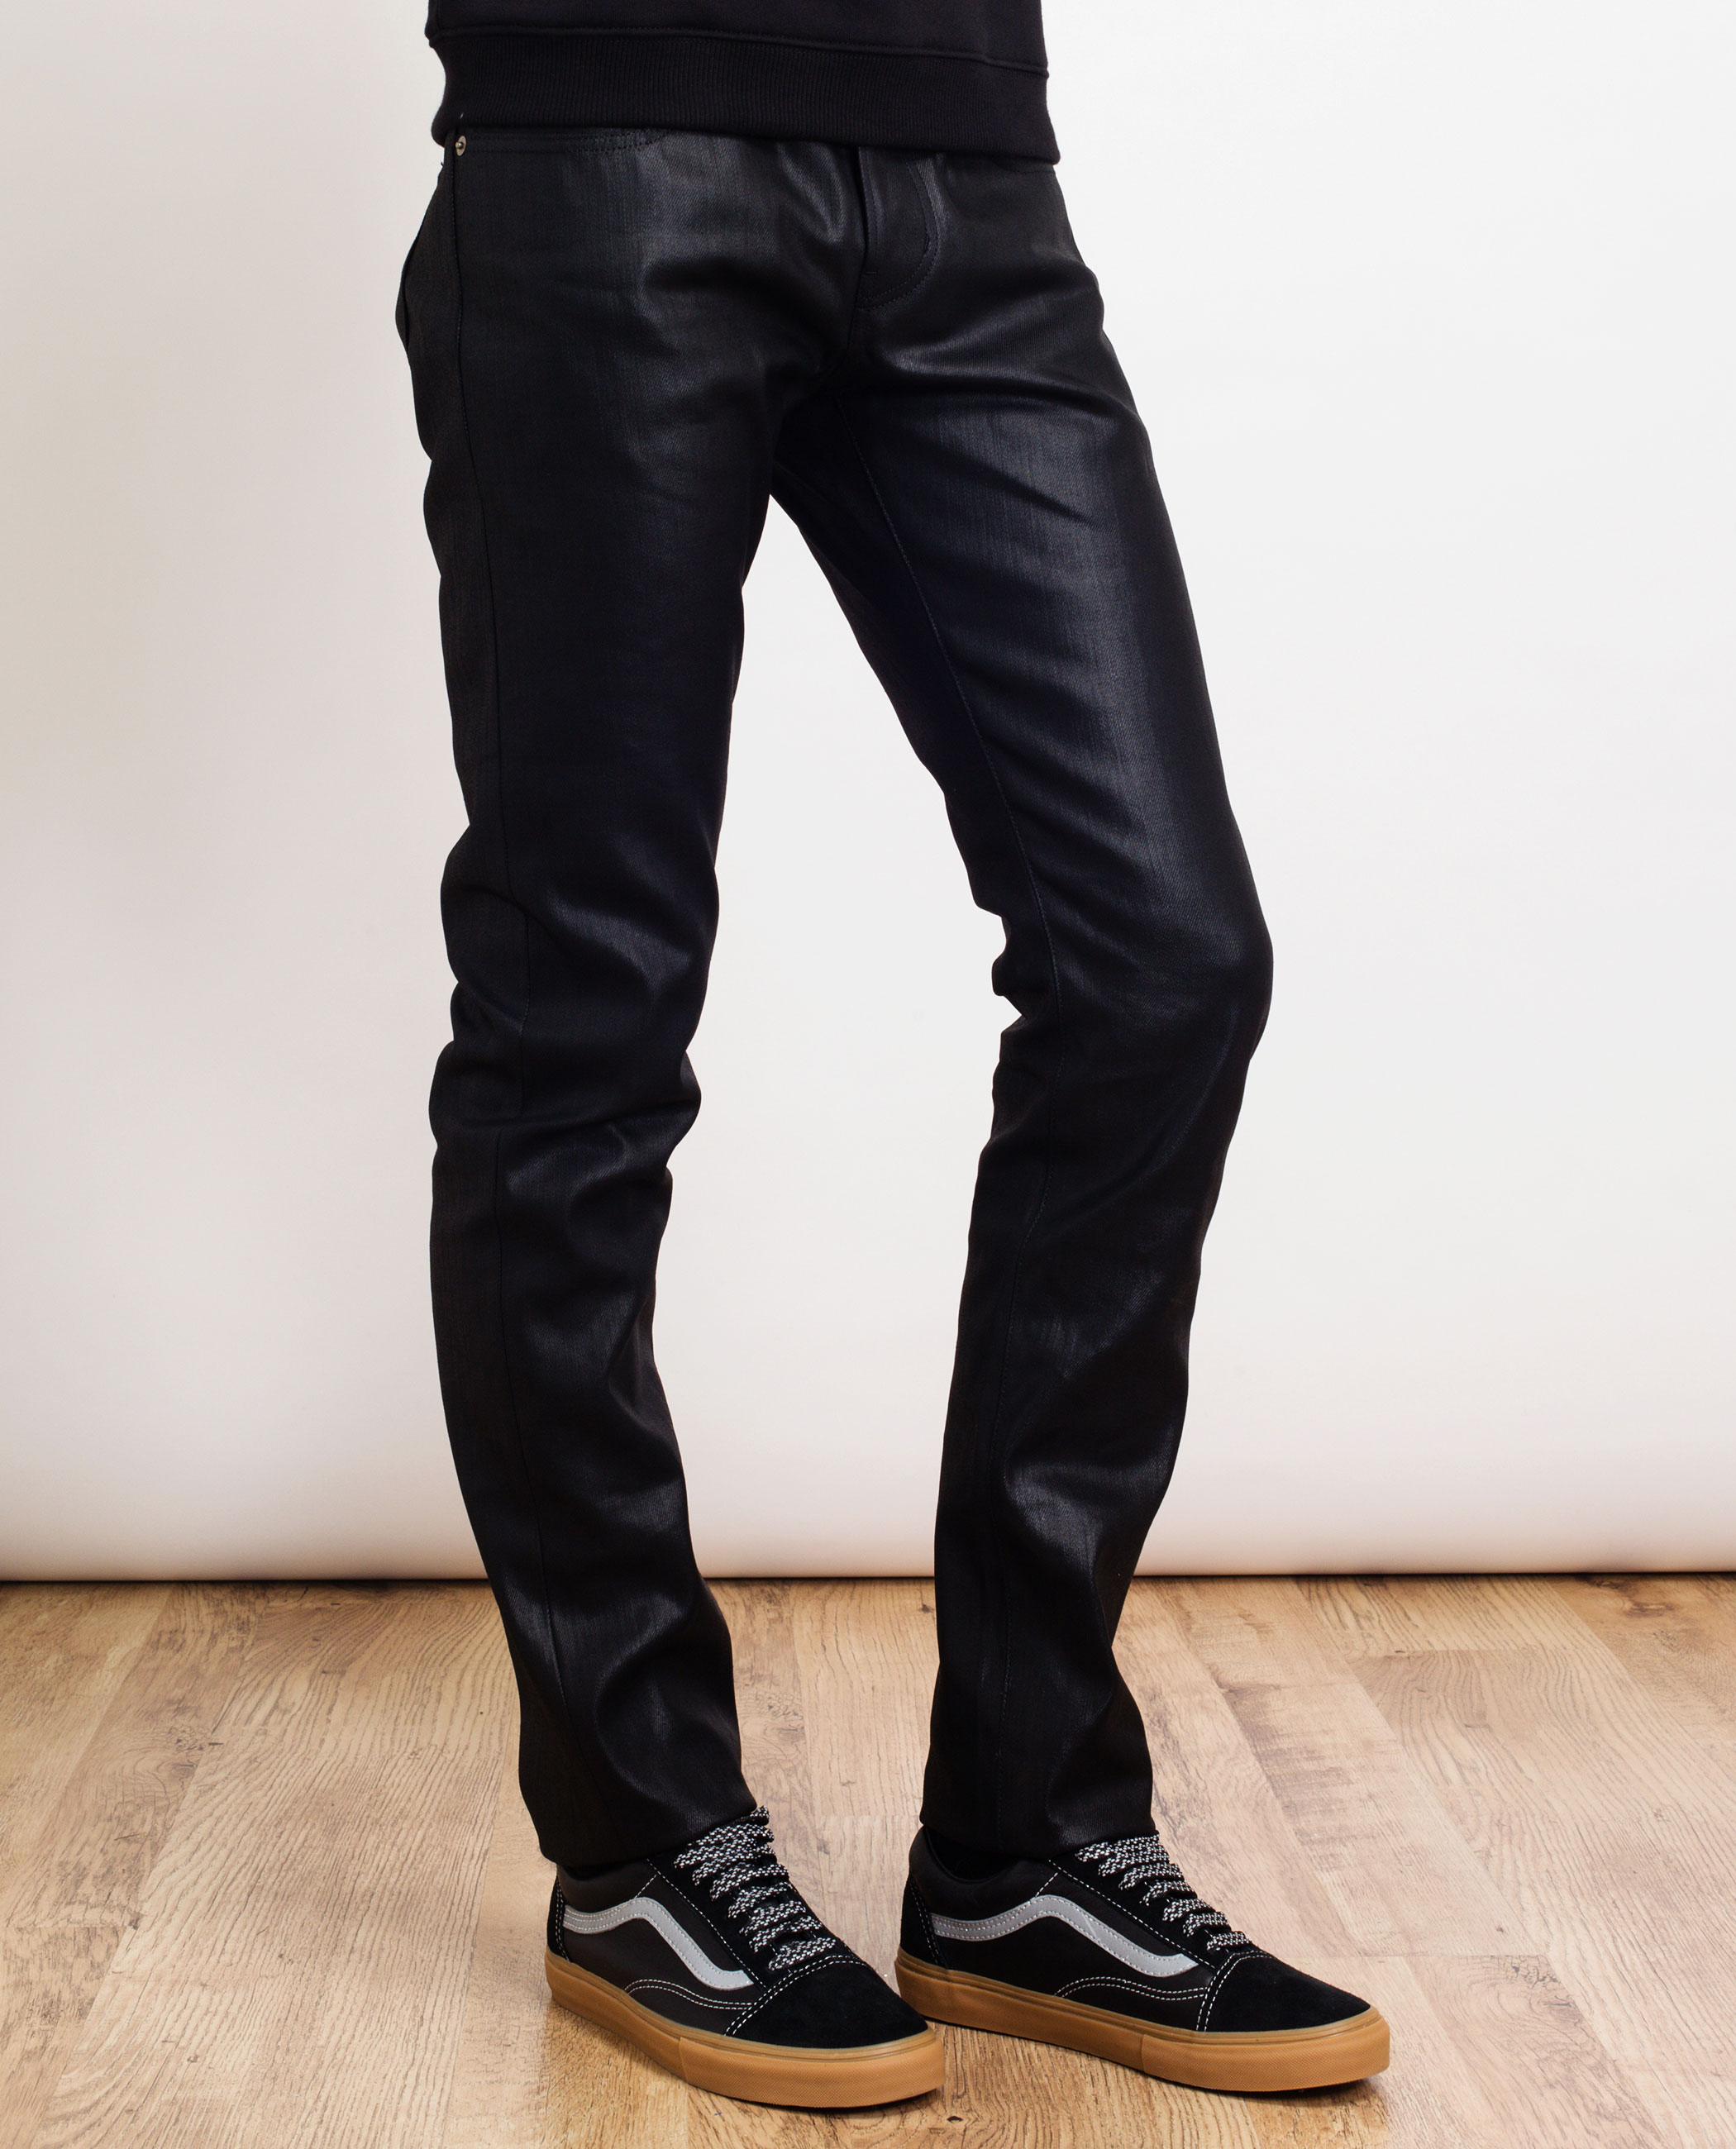 The straight leg or straight fit jeans for men is your straightforward classic with a little extra legroom and a lower rise than the regular fit jeans for men! Regular fit allows the maximum amount of room among all the other styles in men's jeans.